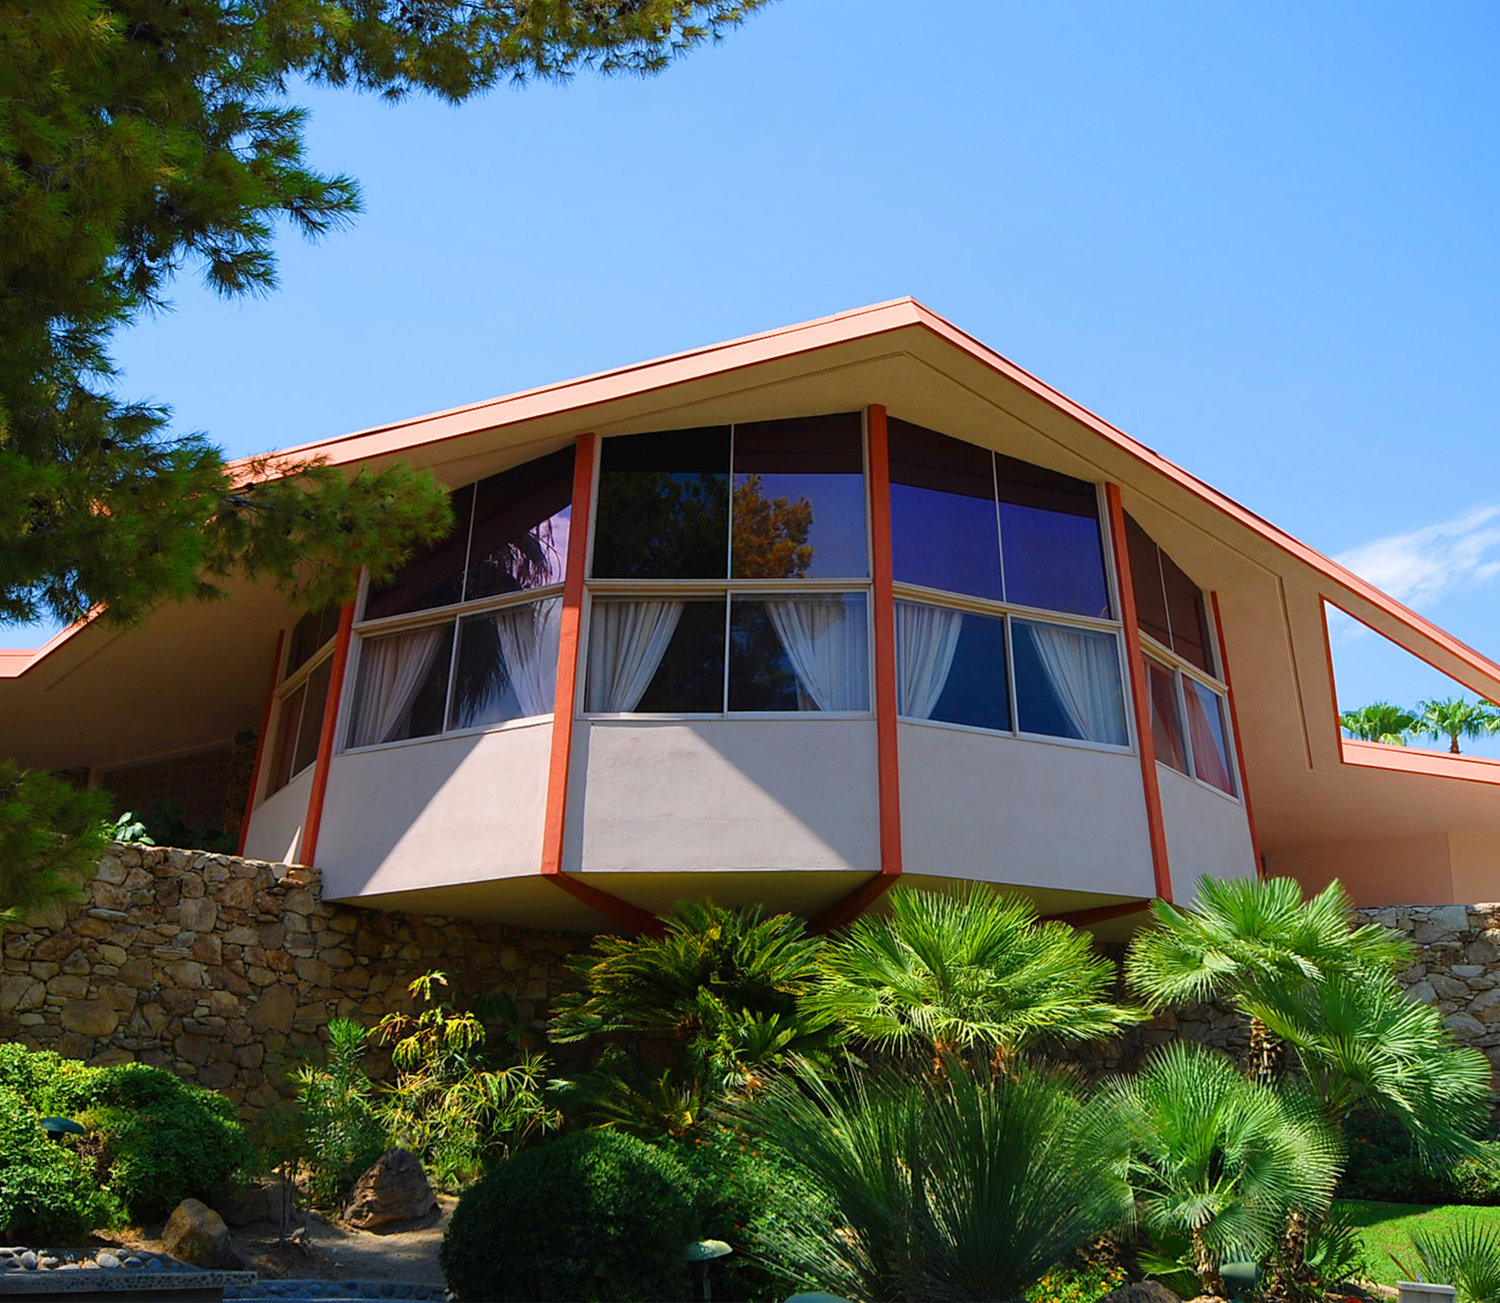 Palm Springs Mid-Century Modern Architecture Tours